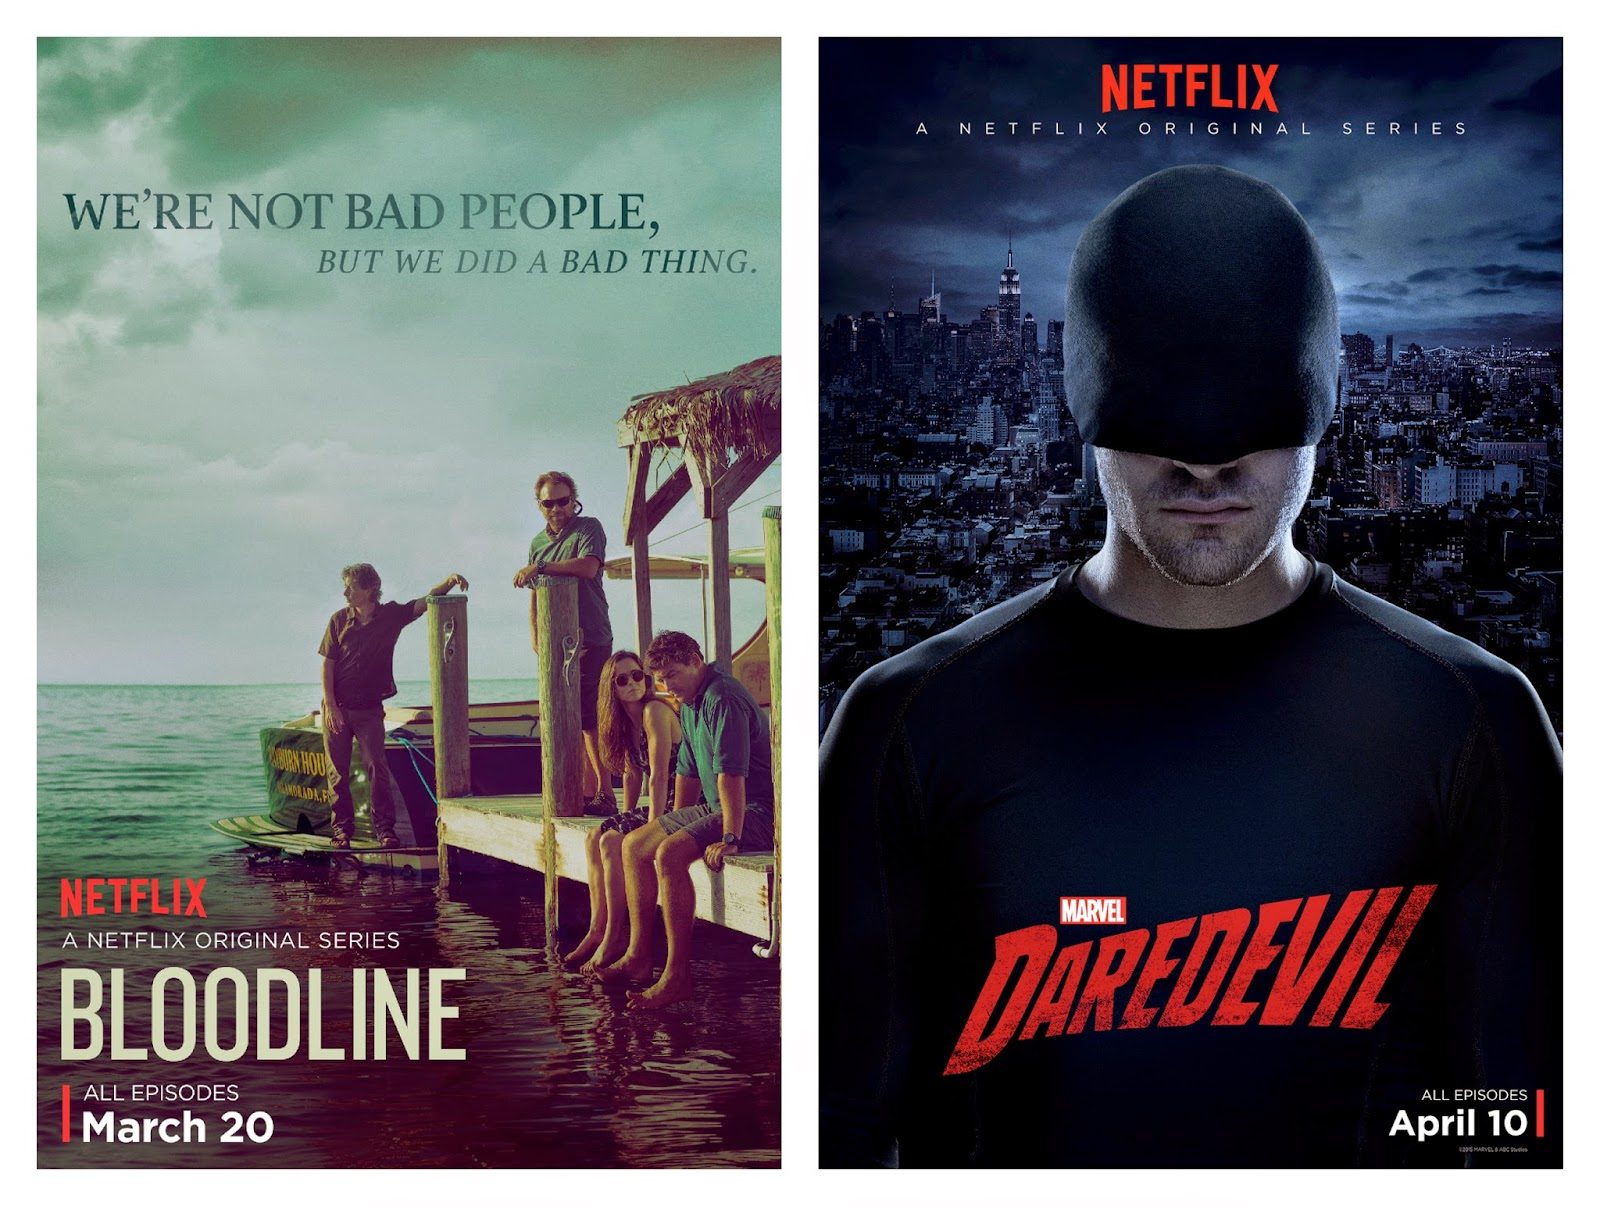 Netflix Originals: Bloodline & Marvel's Daredevil